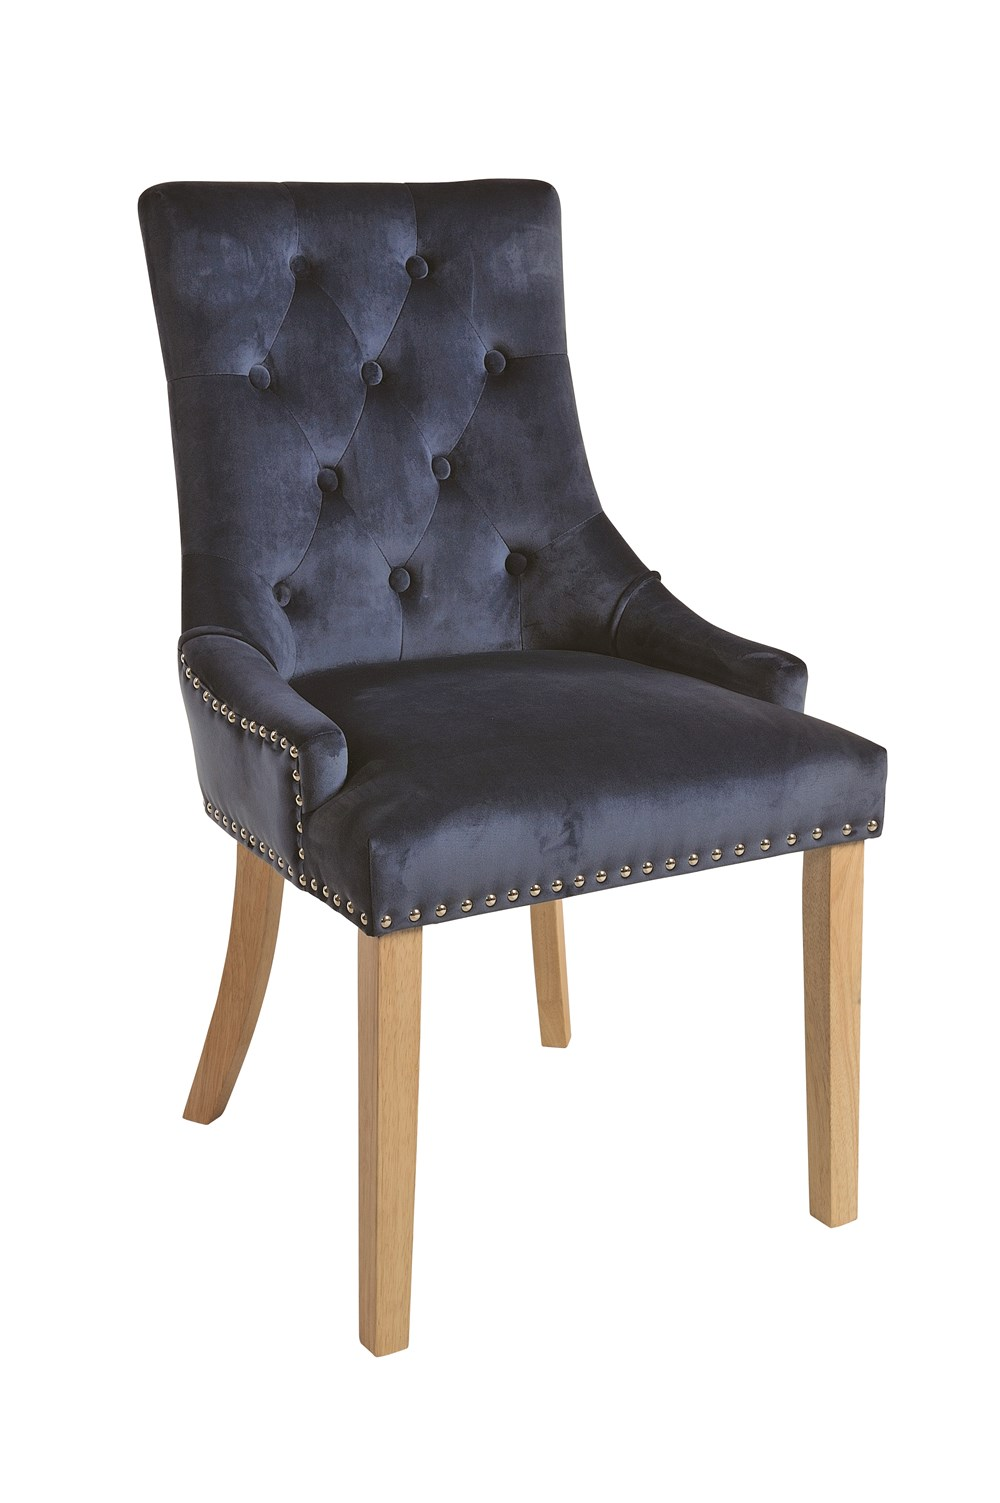 VICKY CHAIR Prussian Blue Upholstered Chair with Natural Legs